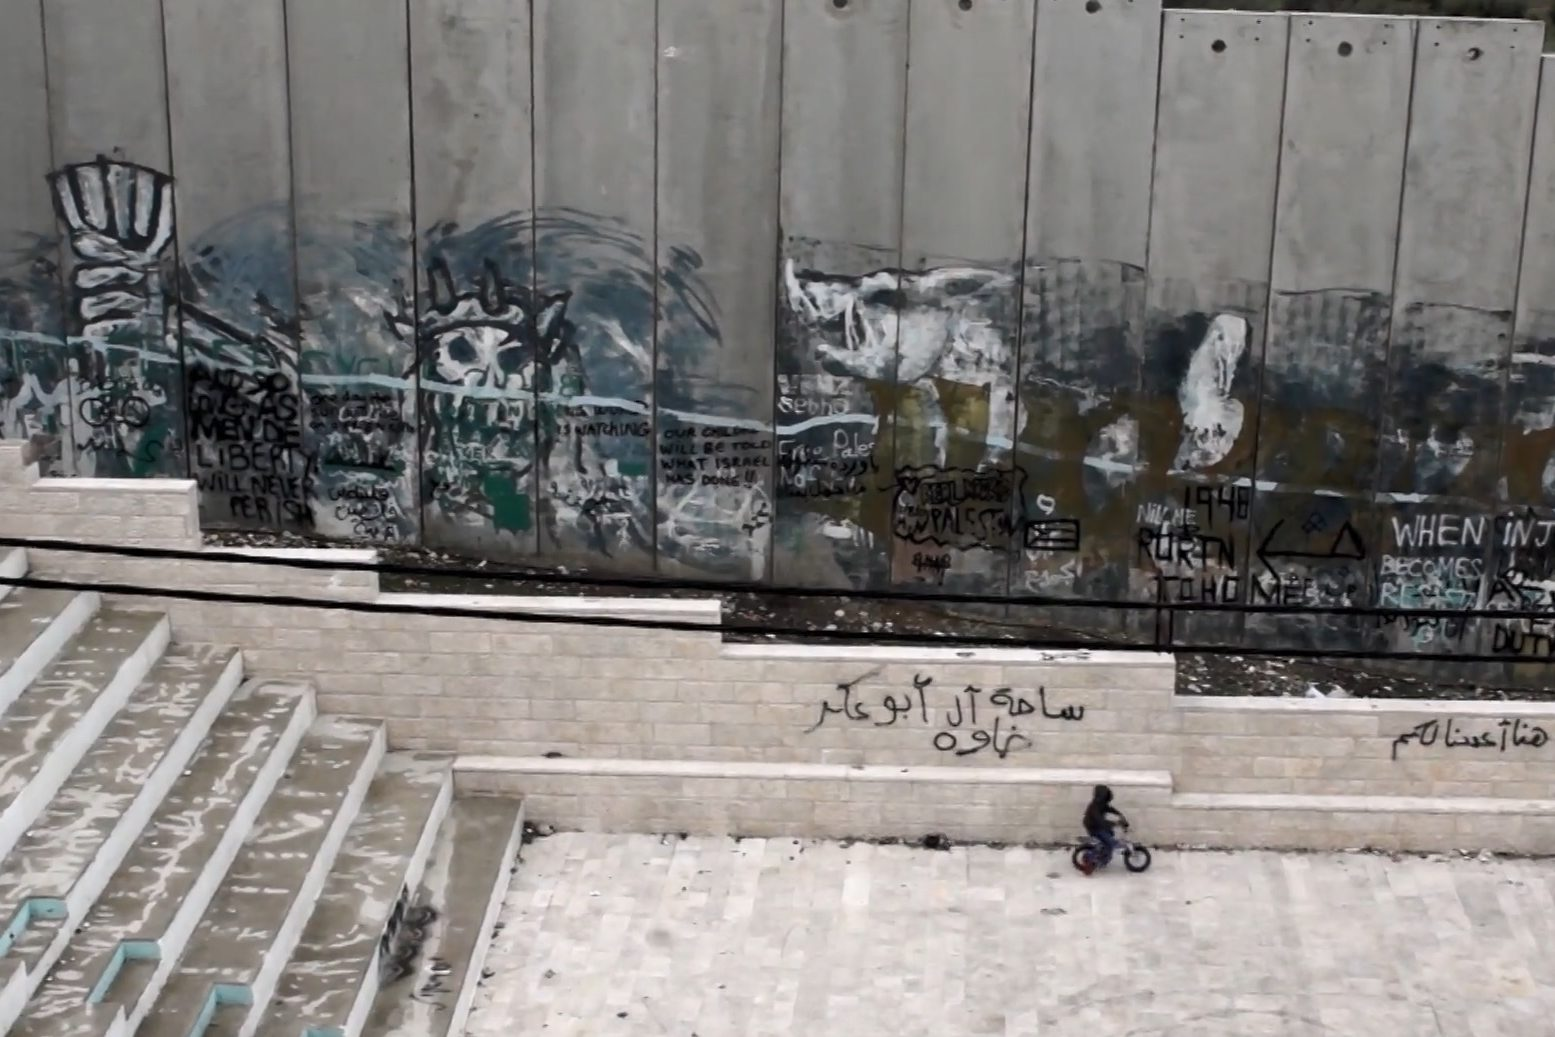 Screen shot from Palestinian film shortlisted for award